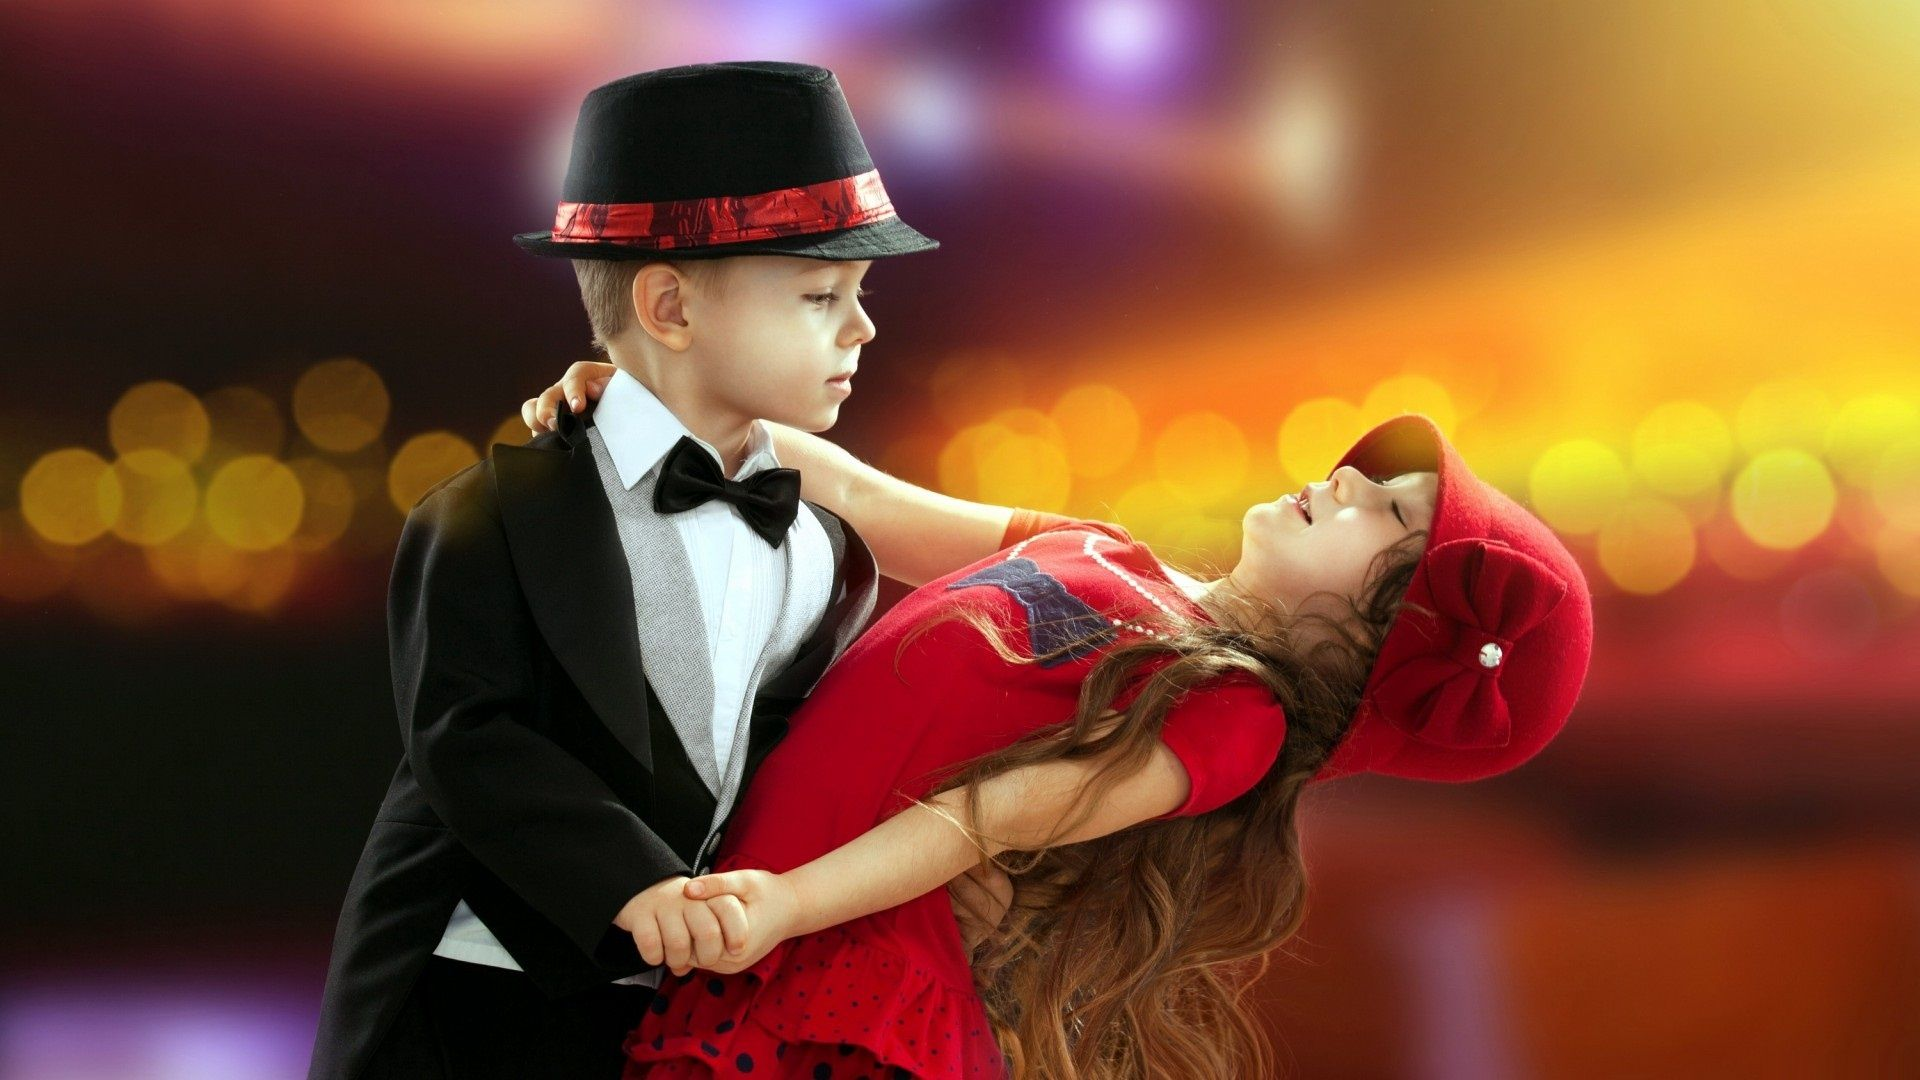 Wallpaper download girl and boy - Download Cute Little Boy And Girl Dancing Together Hd Widescreen Wallpaper